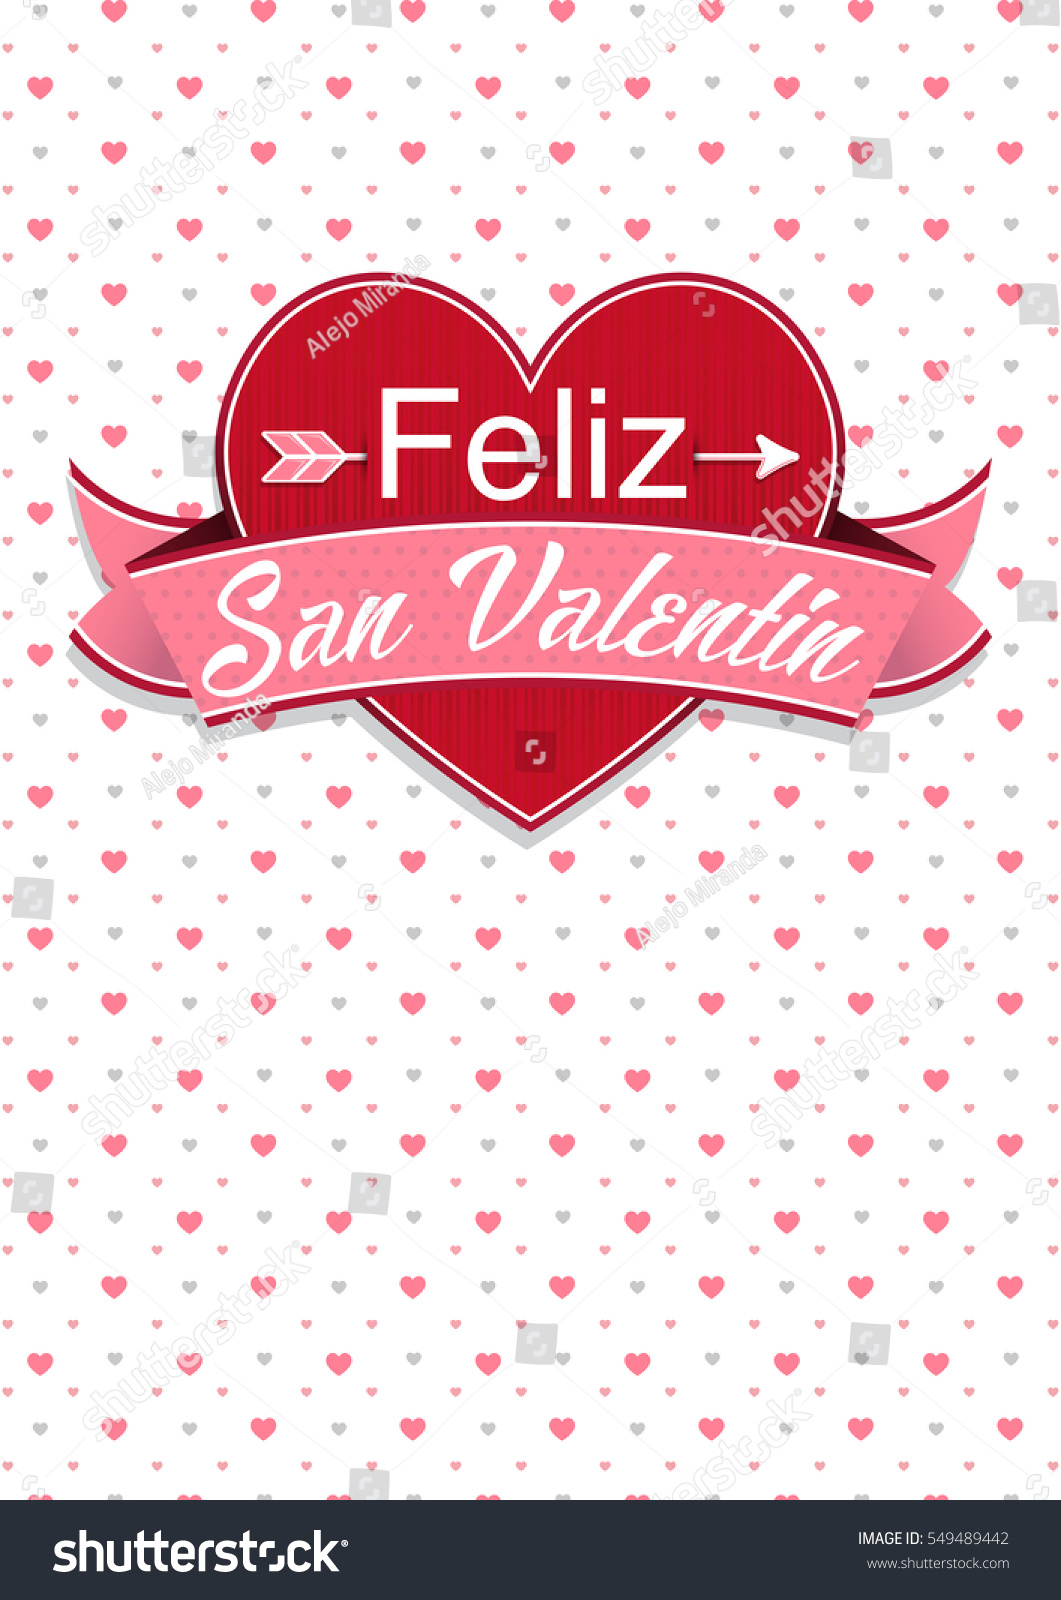 Card Cover With Message: Feliz San Valentin  Happy Valentines Day In  Spanish Language